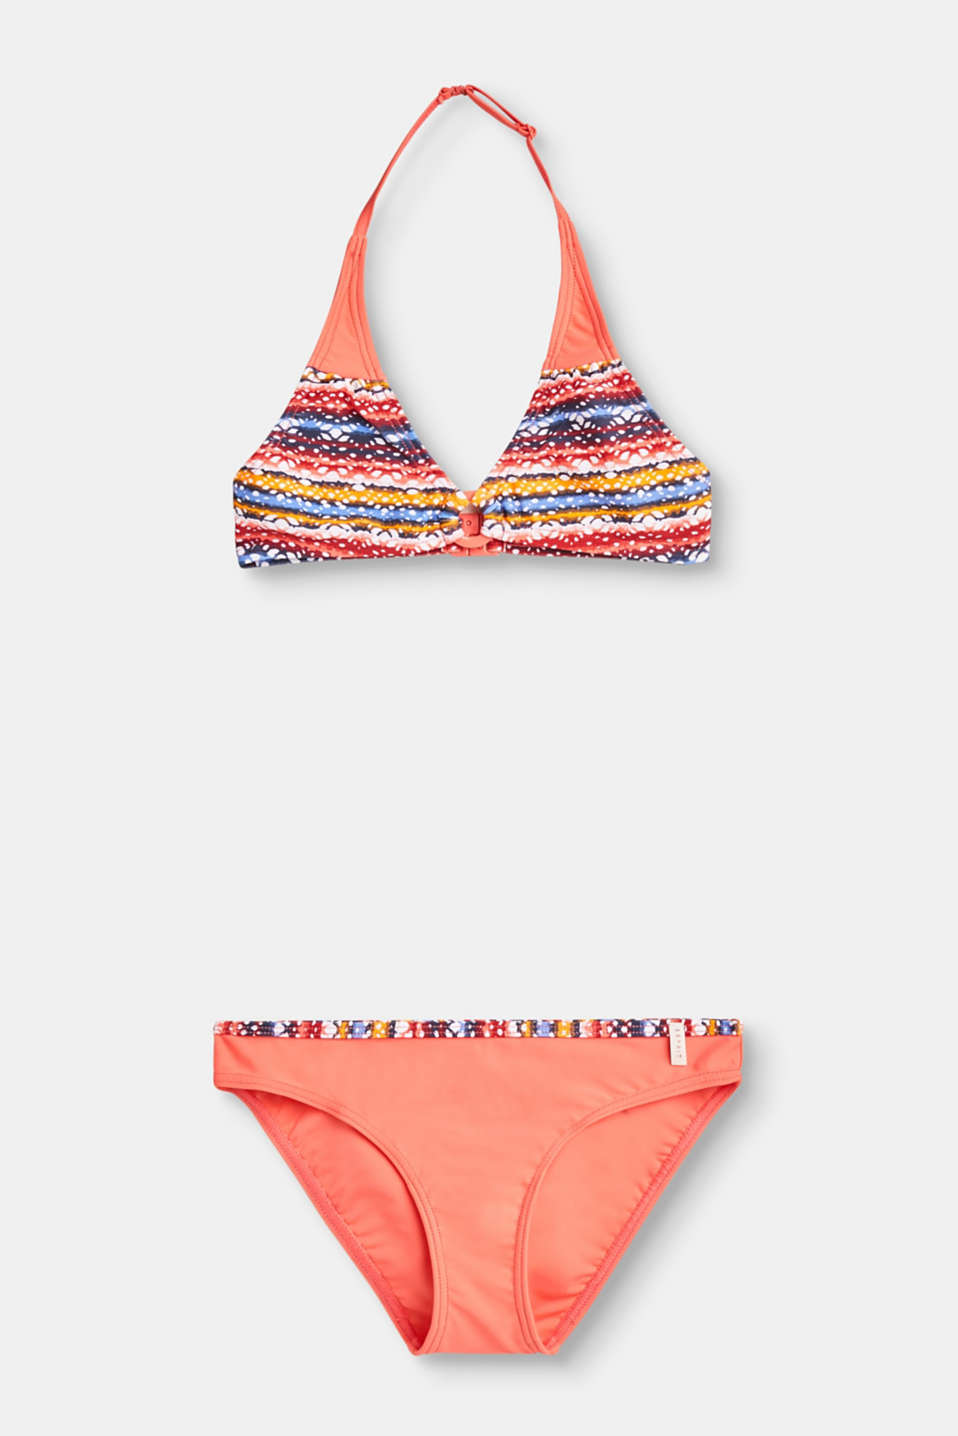 Puts us in the mood for sun, sun and the beach: halterneck bikini set with a colourful graphic print.